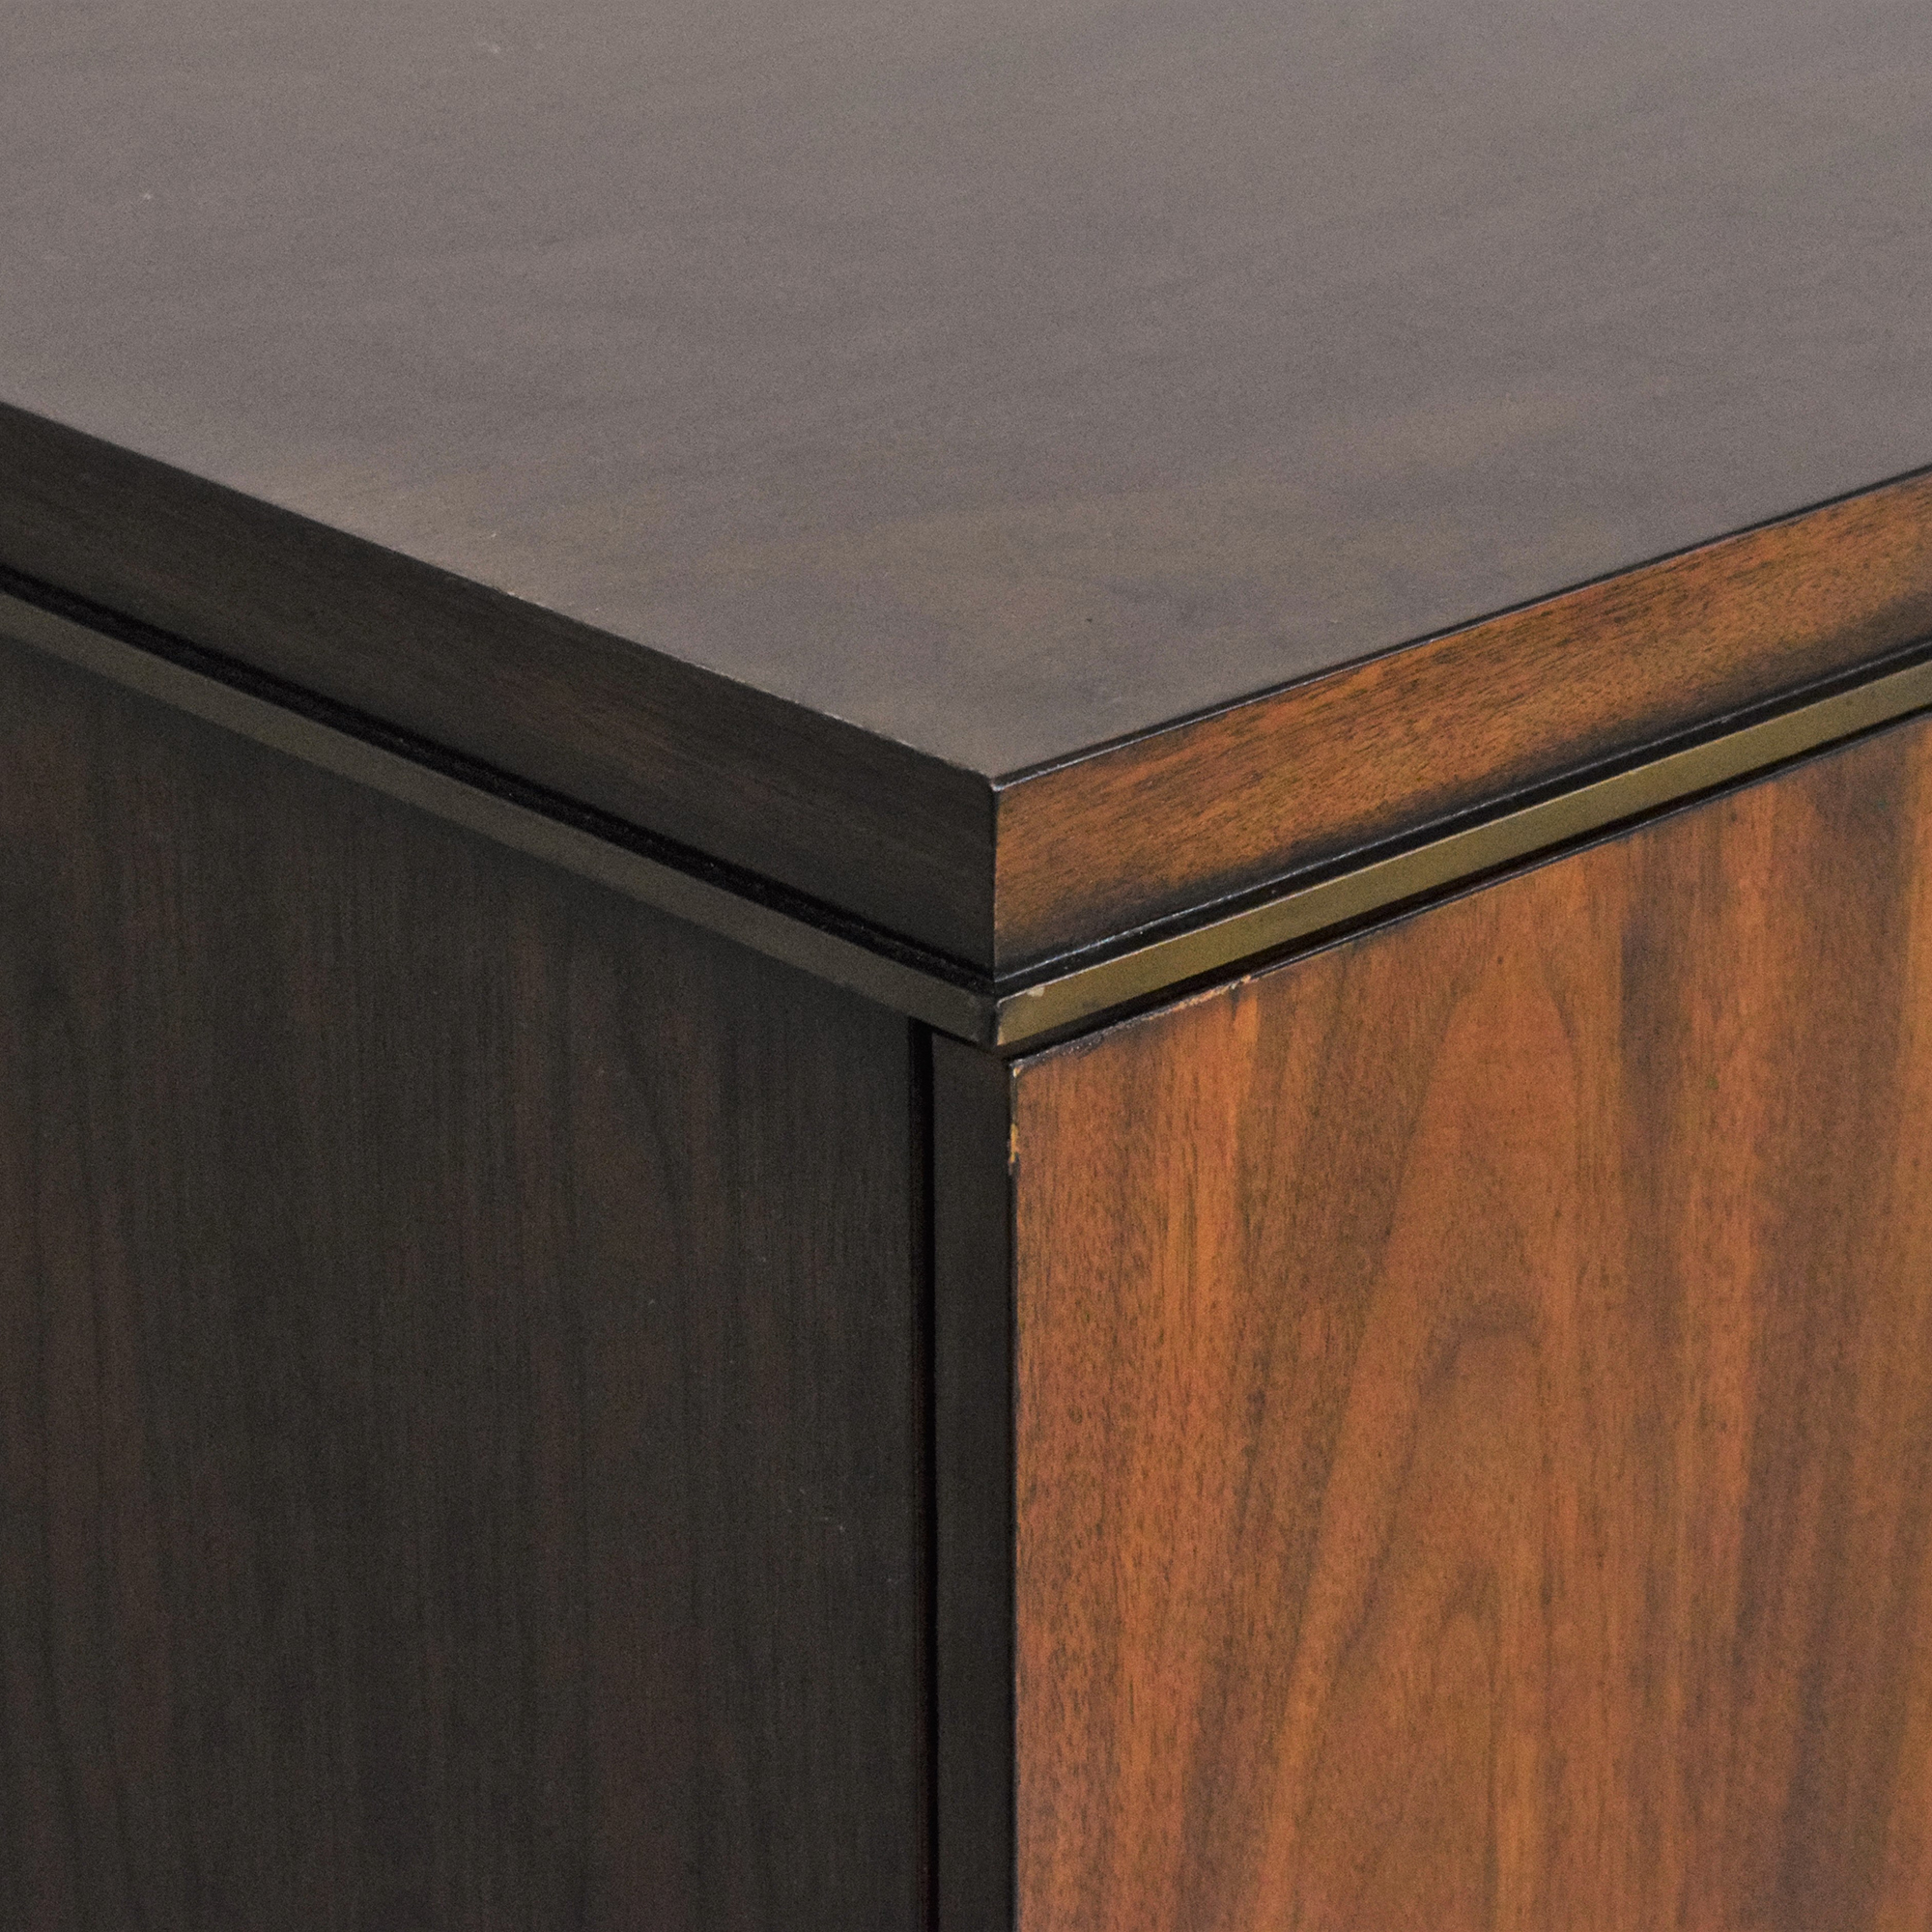 Lexington Furniture Lexington Tower Place Collection Highland Park Buffet Cabinets & Sideboards